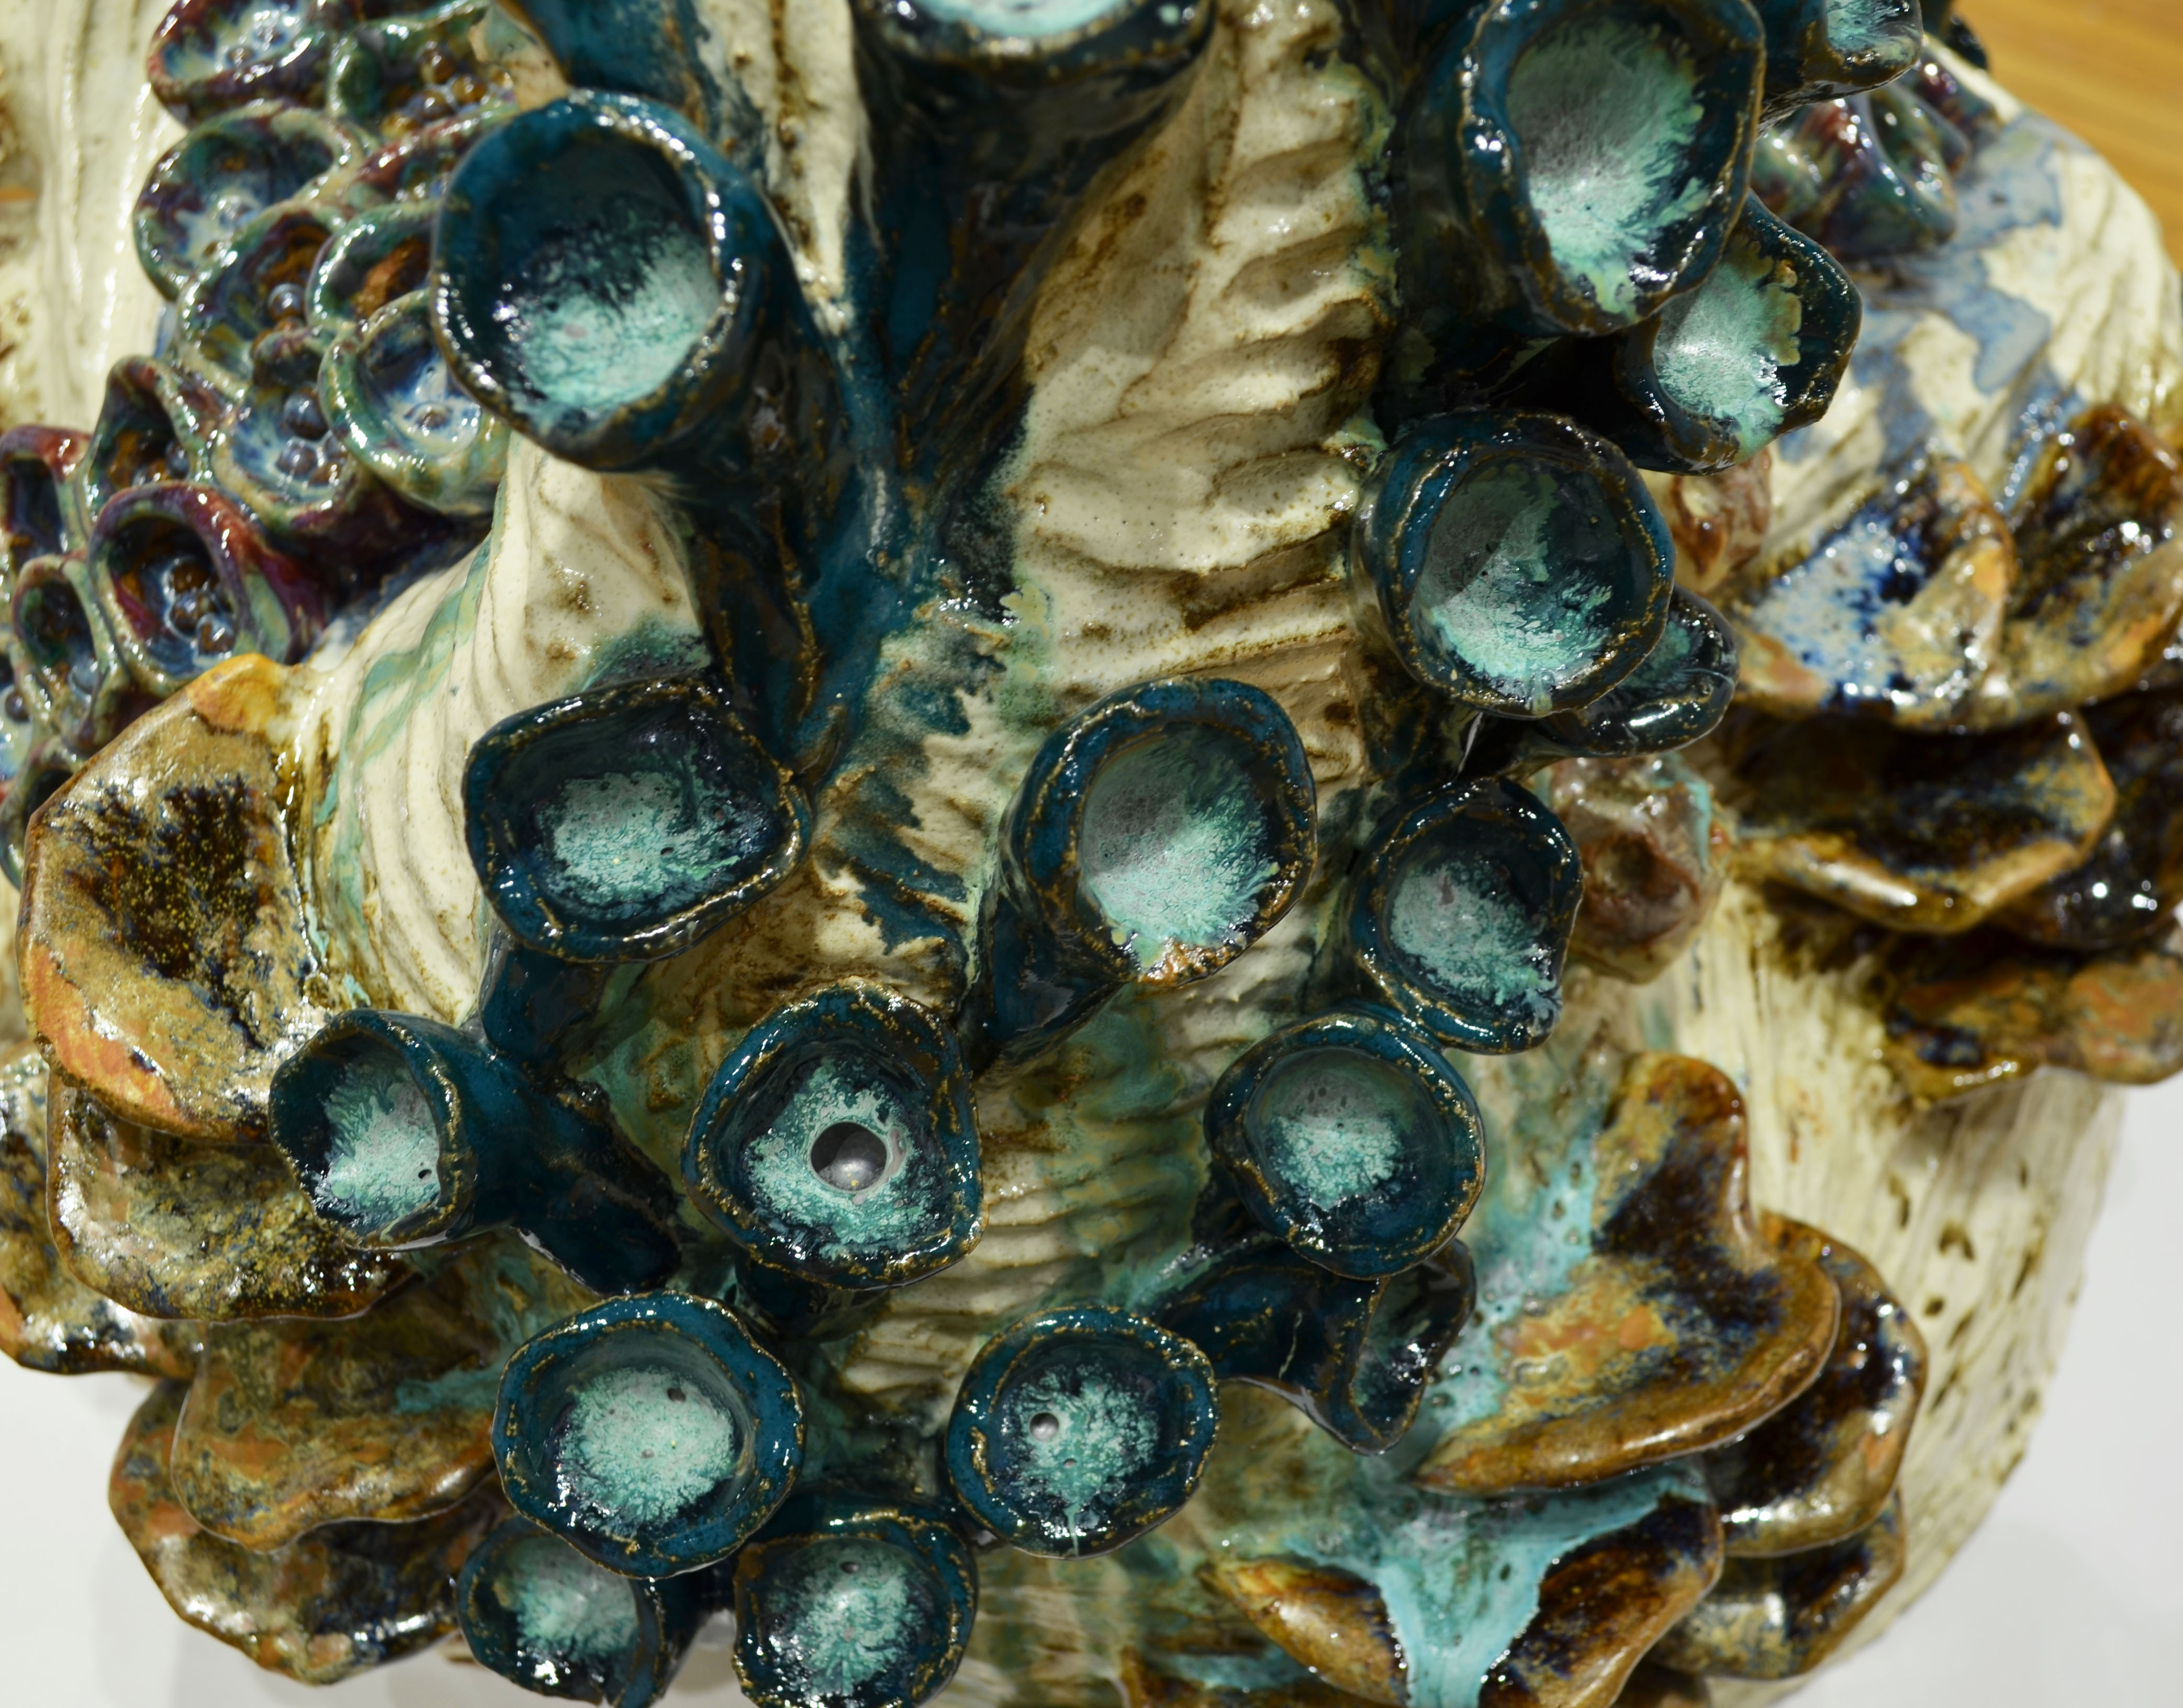 Detail of Fungal Bloom with an emphasis on the tubular structure and the glaze within